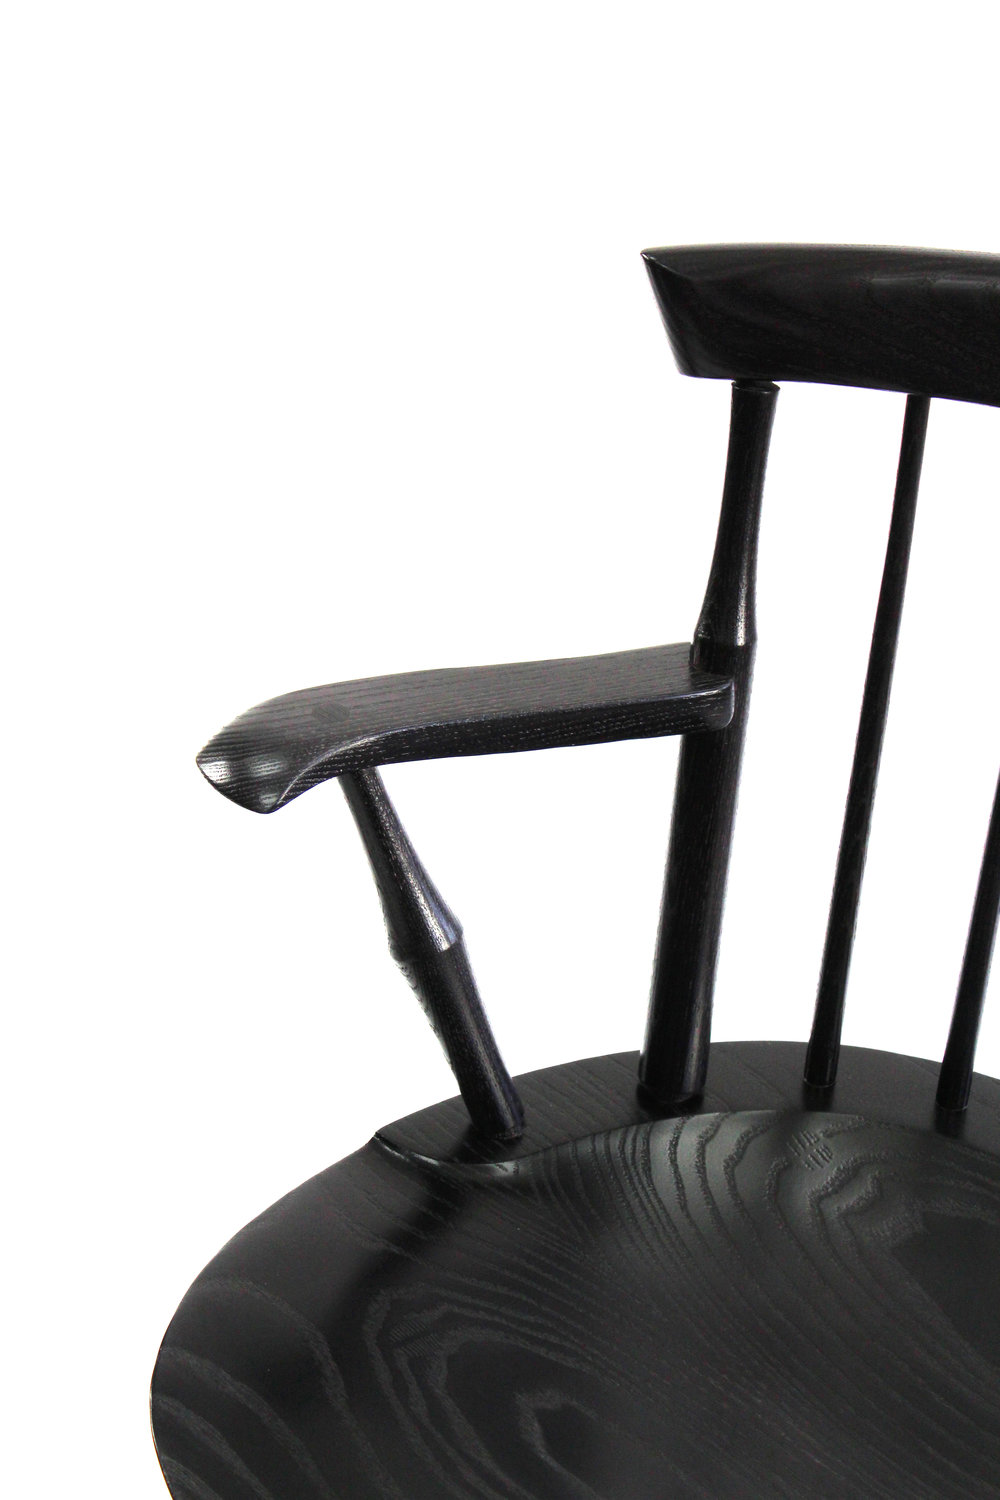 Ebony Maple Stained Ebonized Windsor Wayland Low Back Arm Chair O&G